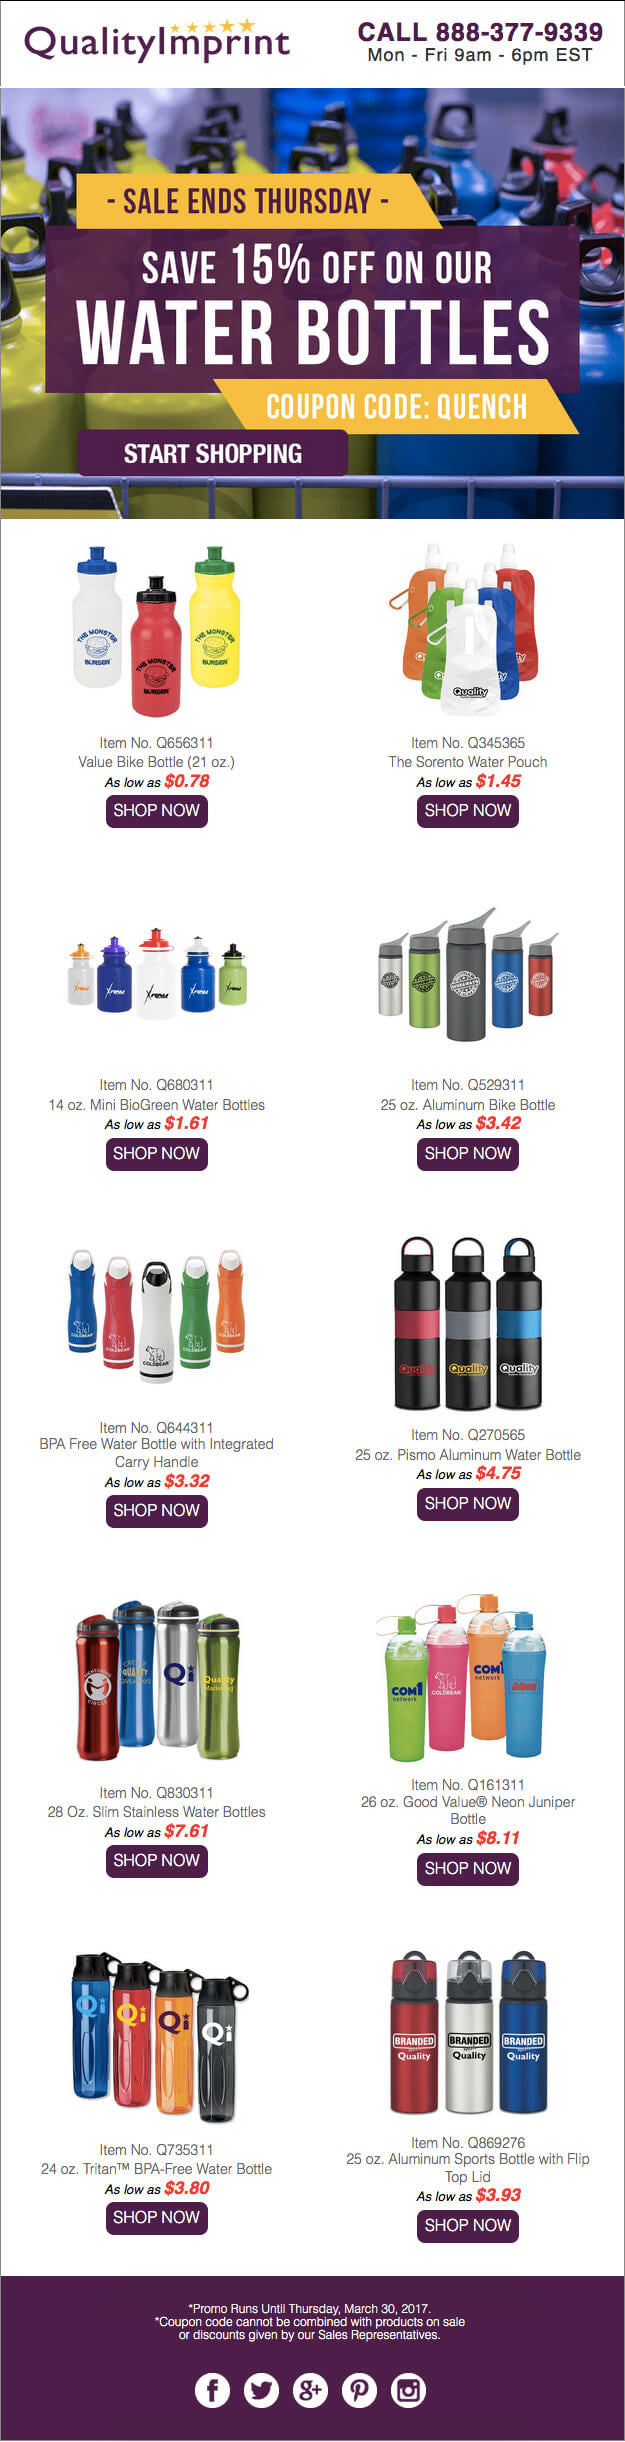 SAVE 15% ON WATER BOTTLES